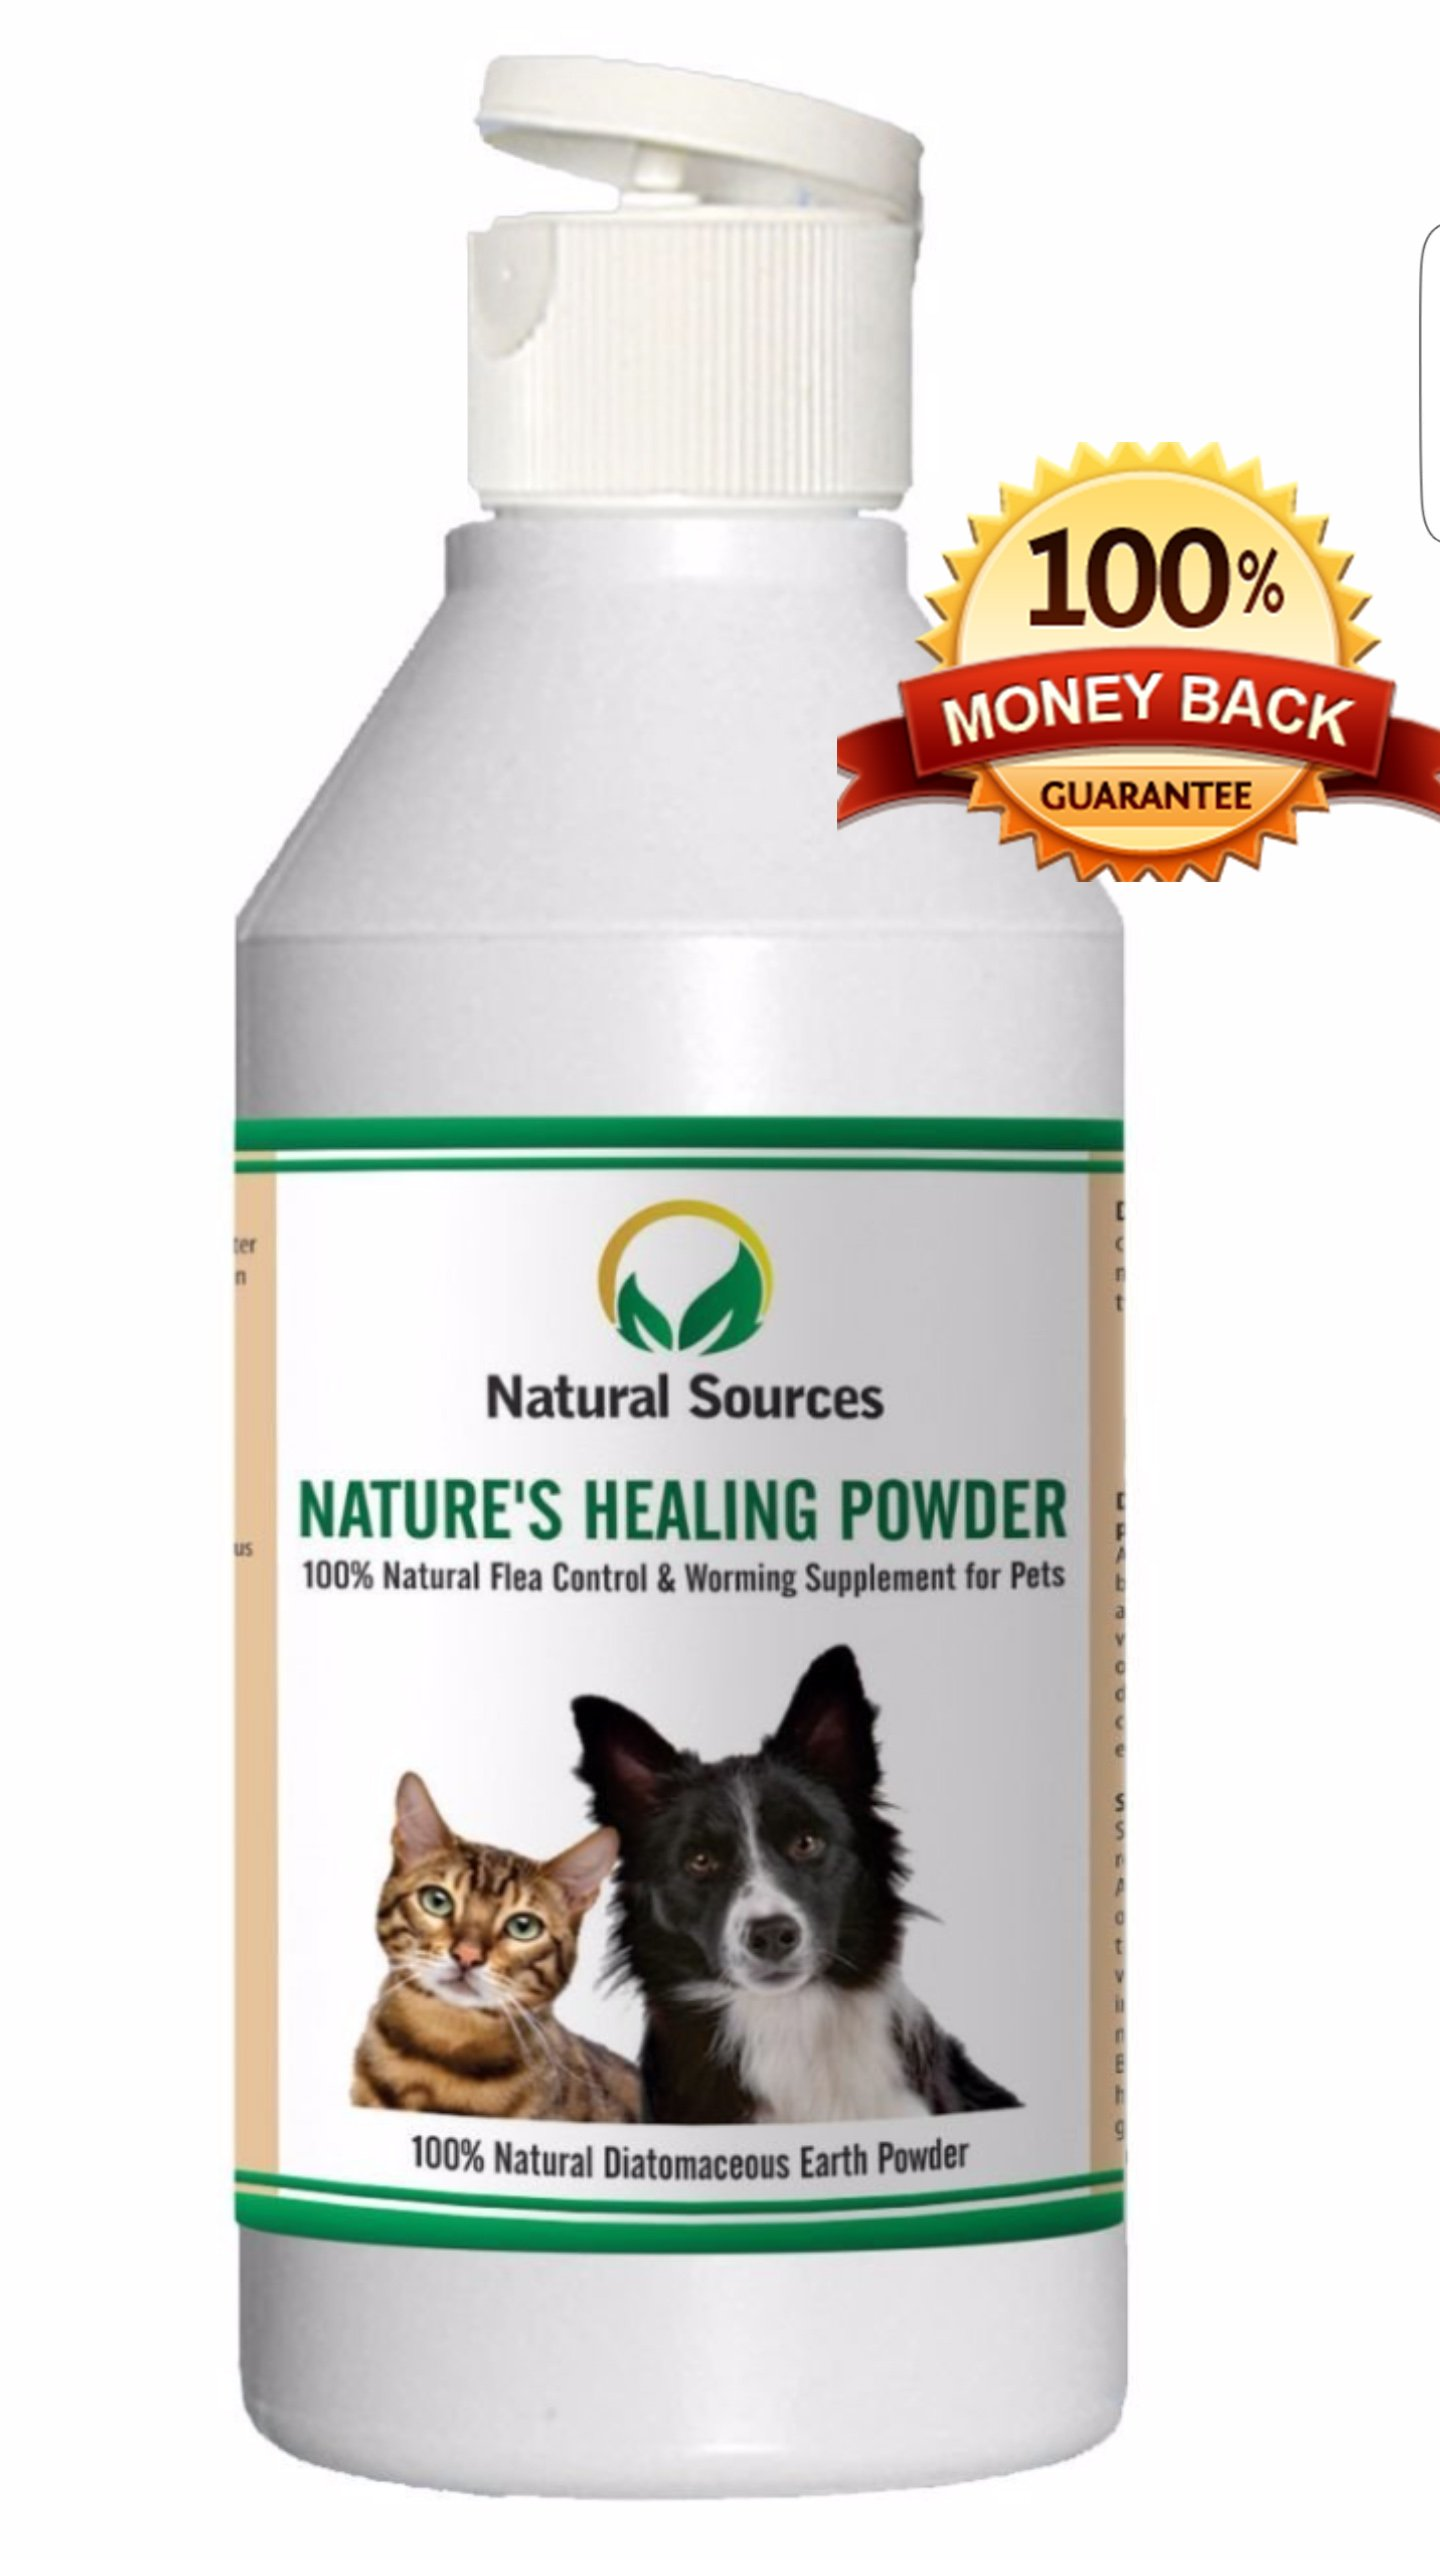 Nature's Healing Powder by Natural Sources™ – 100% Natural Flea Powder Treatment For Dogs, Cats, Bedding & Home – Safe For Use Around Kids & All Pets. Purest Quality Mexican Freshwater Codex (Human Food Grade) Diatomaceous Earth Powder.